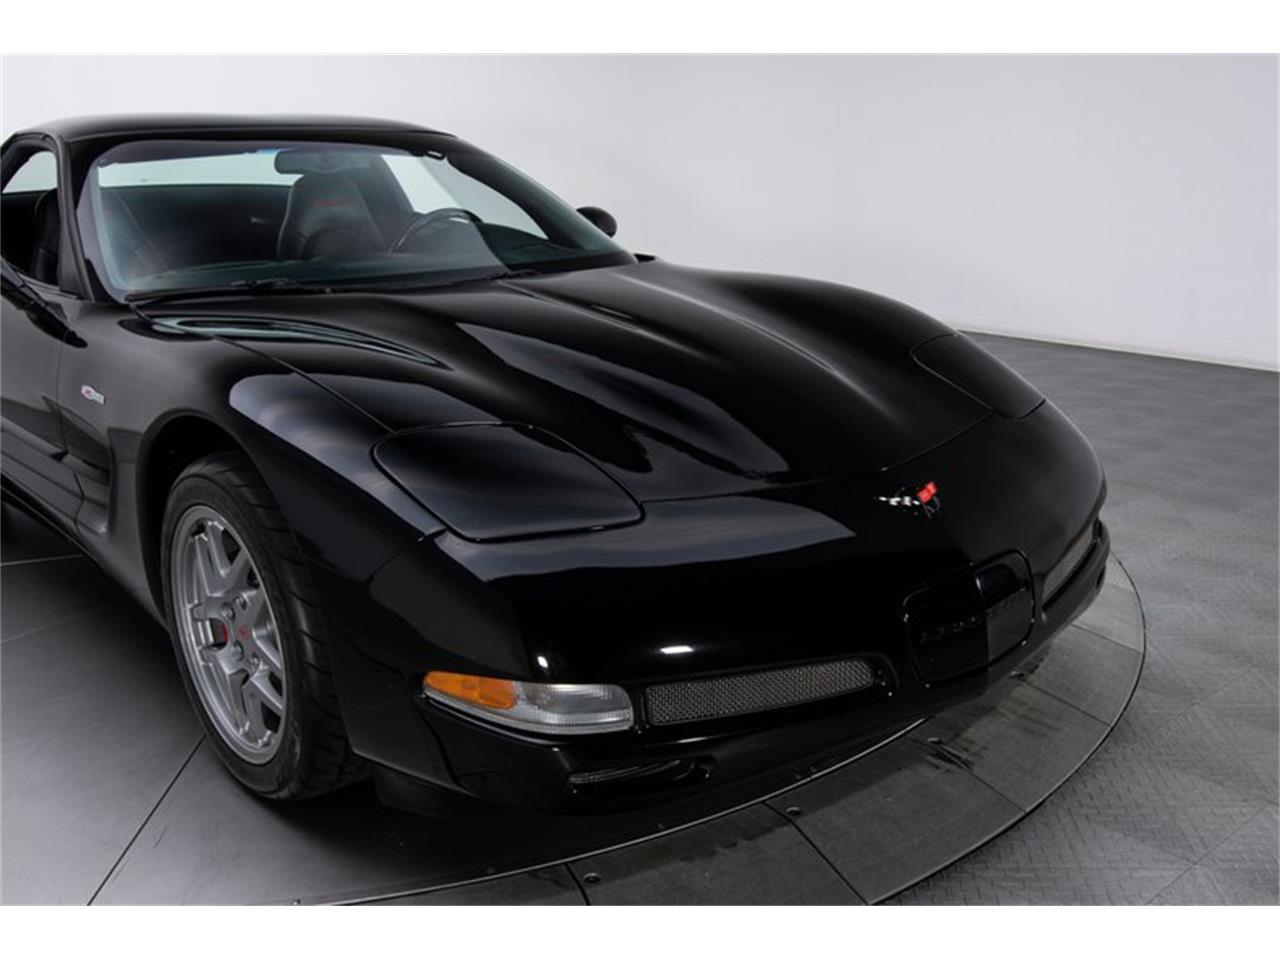 2002 Chevrolet Corvette (CC-1351033) for sale in Charlotte, North Carolina